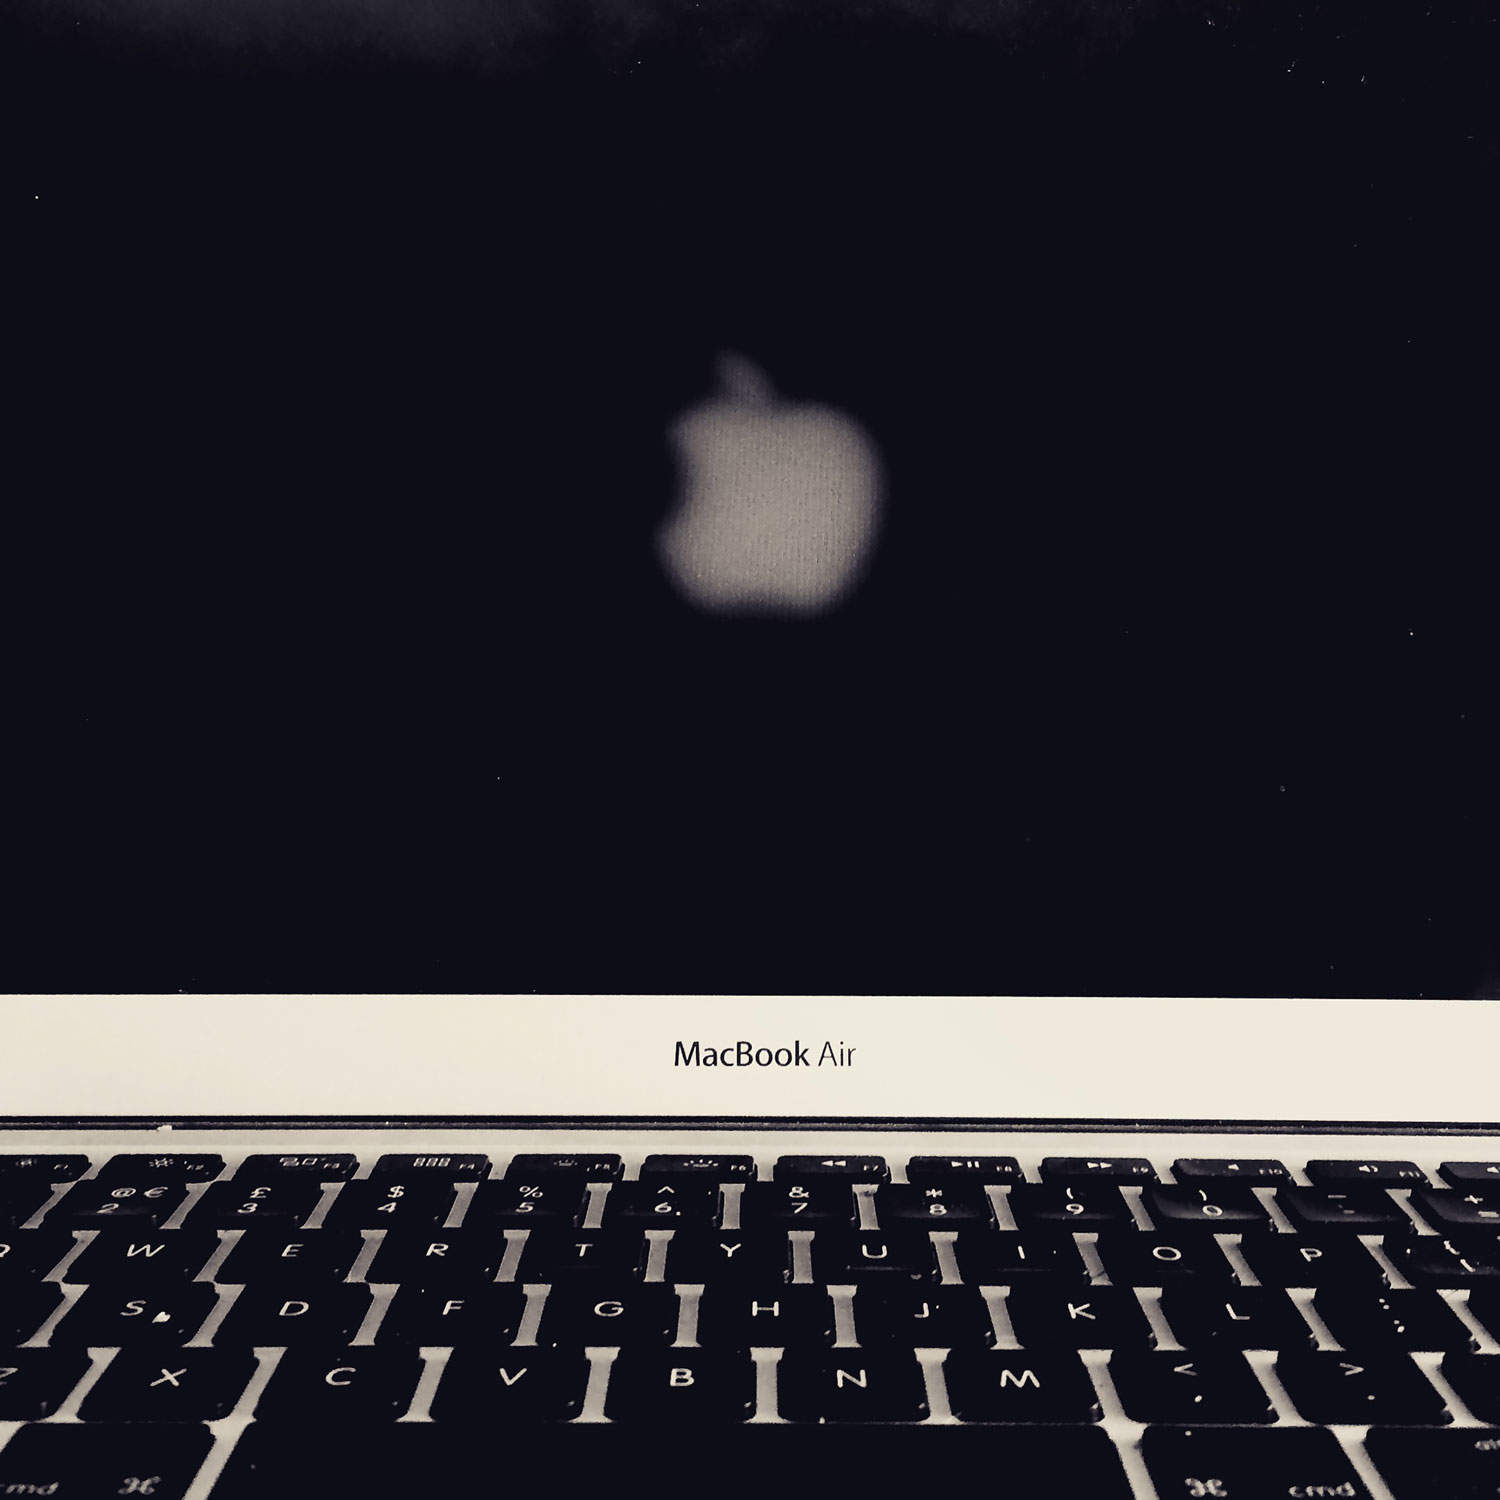 Reversed Apple Logo Macbook Air Screen